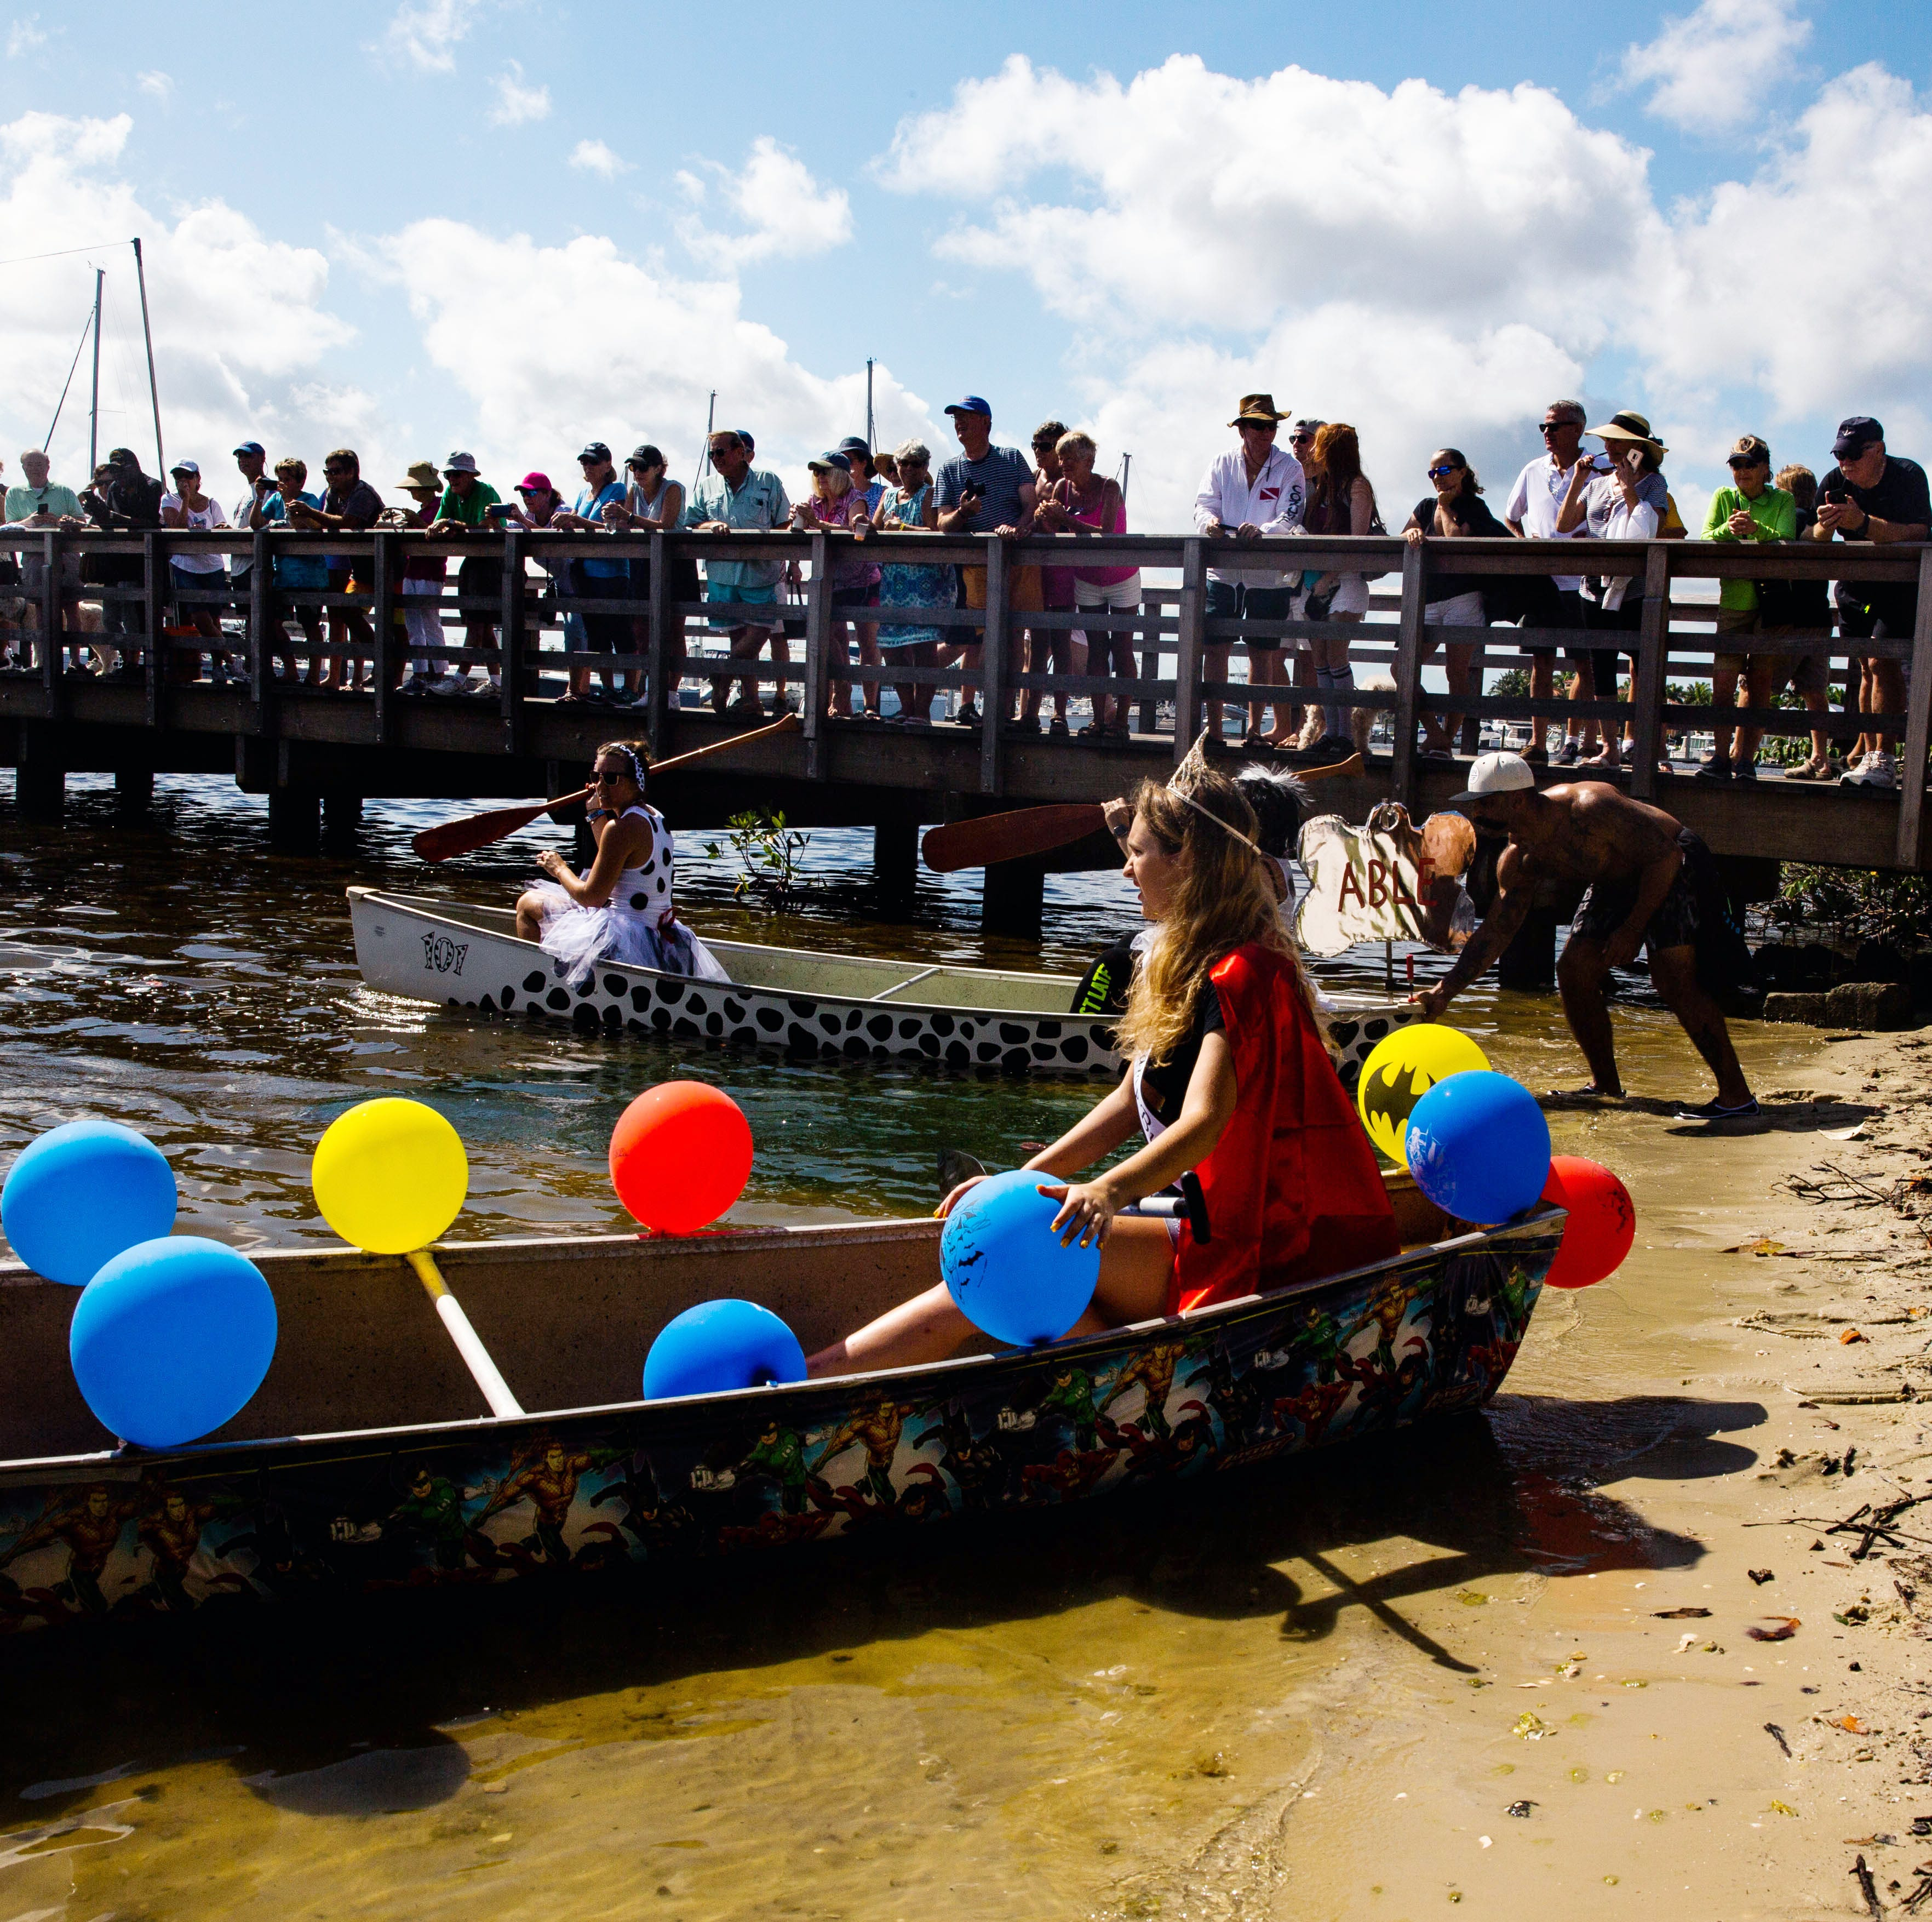 Hundreds of spectators enjoy the 43rd annual Great Dock Canoe Race in Naples